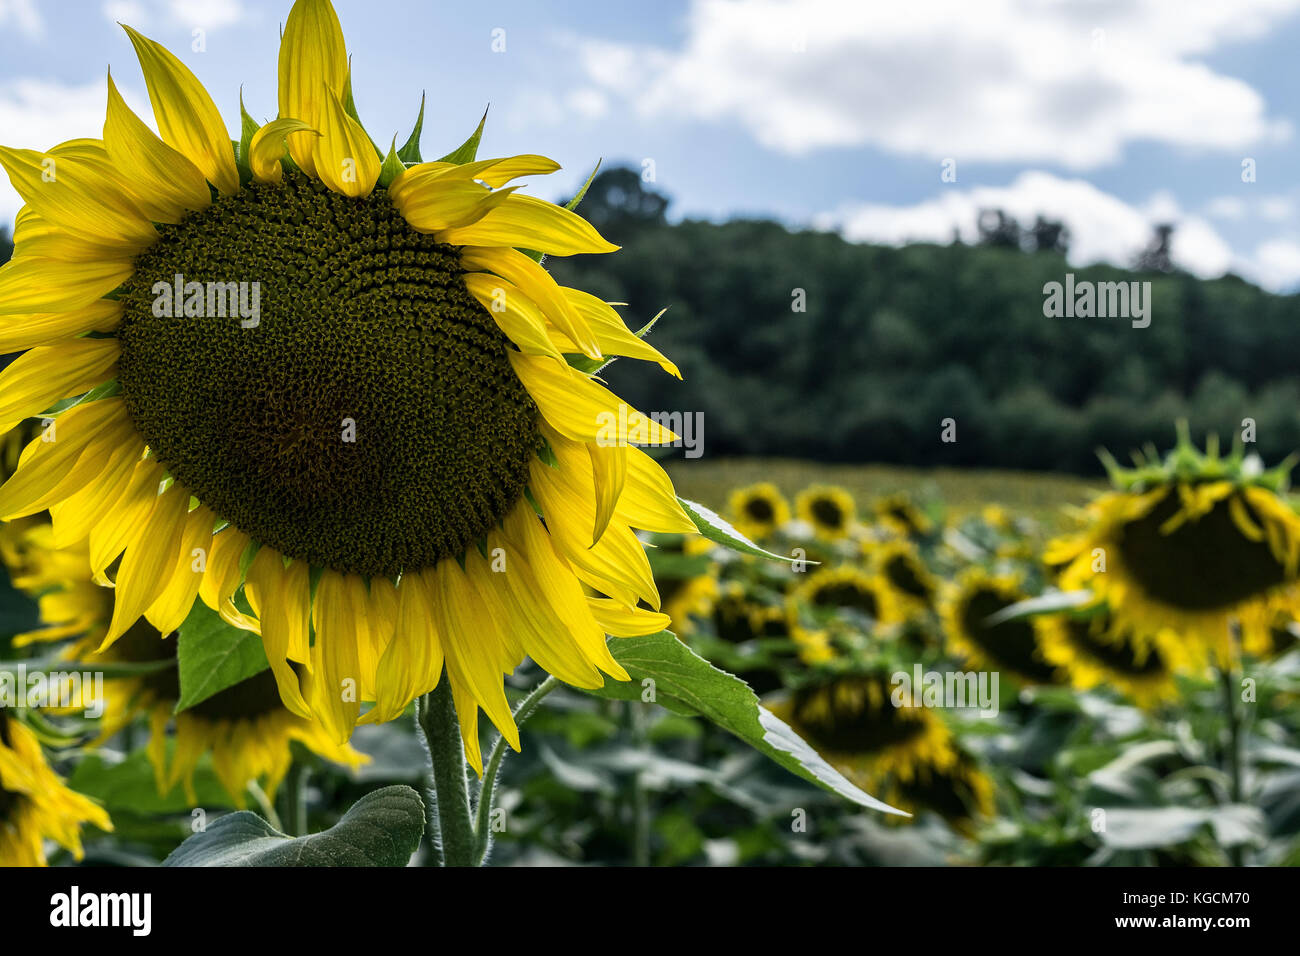 CLOSE-UP OF A SUNFLOWER IN A FIELD OF BLOOMS, DORDOGNE, FRANCE - Stock Image